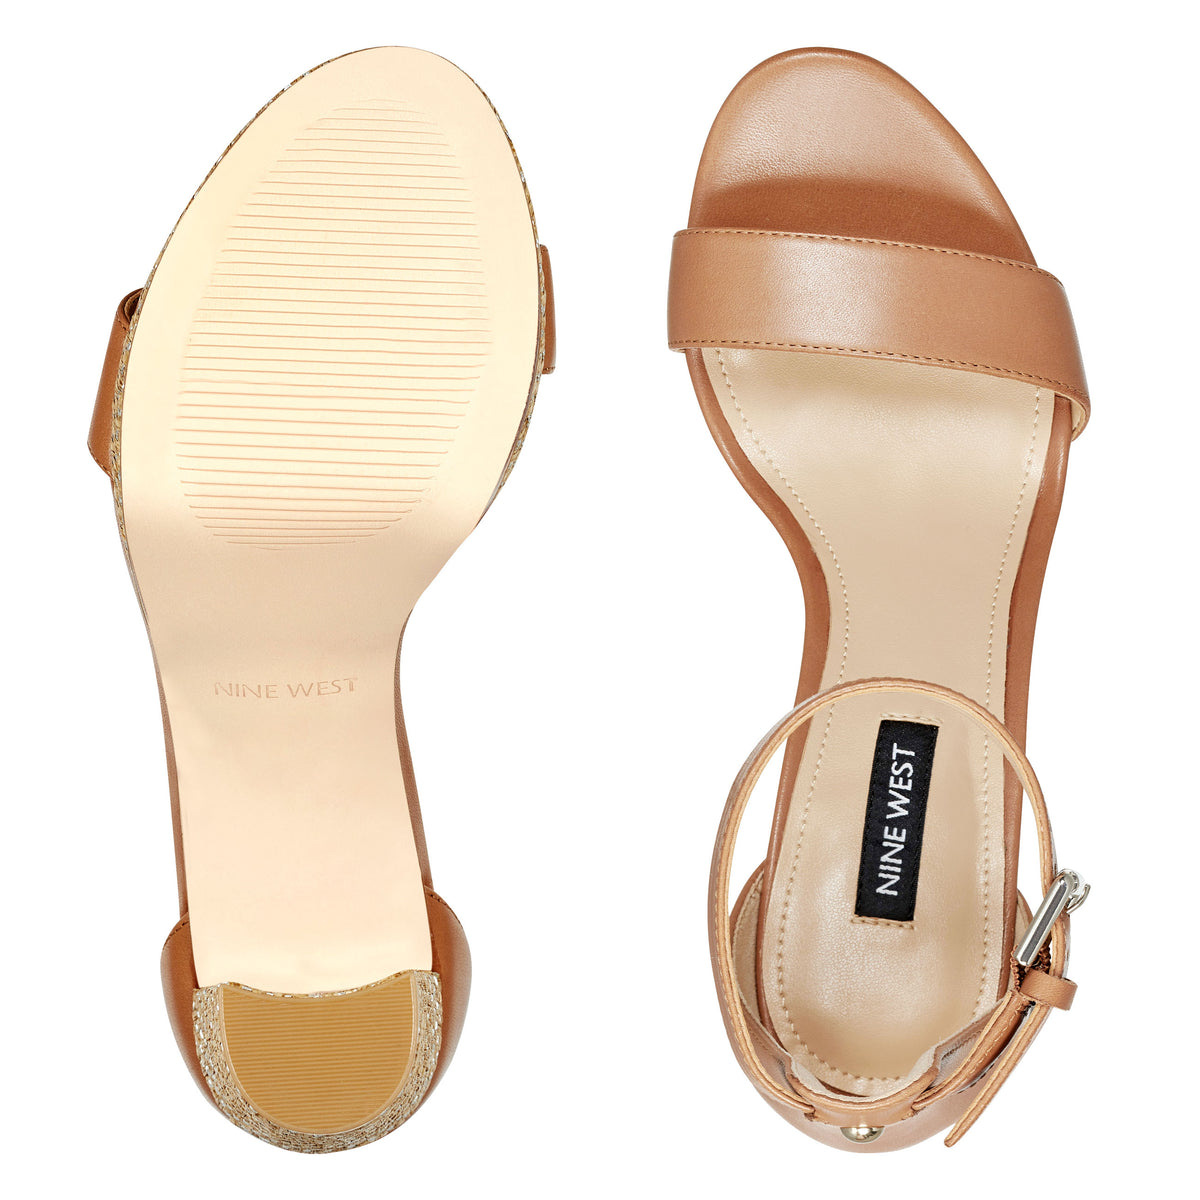 dempsey-platform-sandals-in-luggage